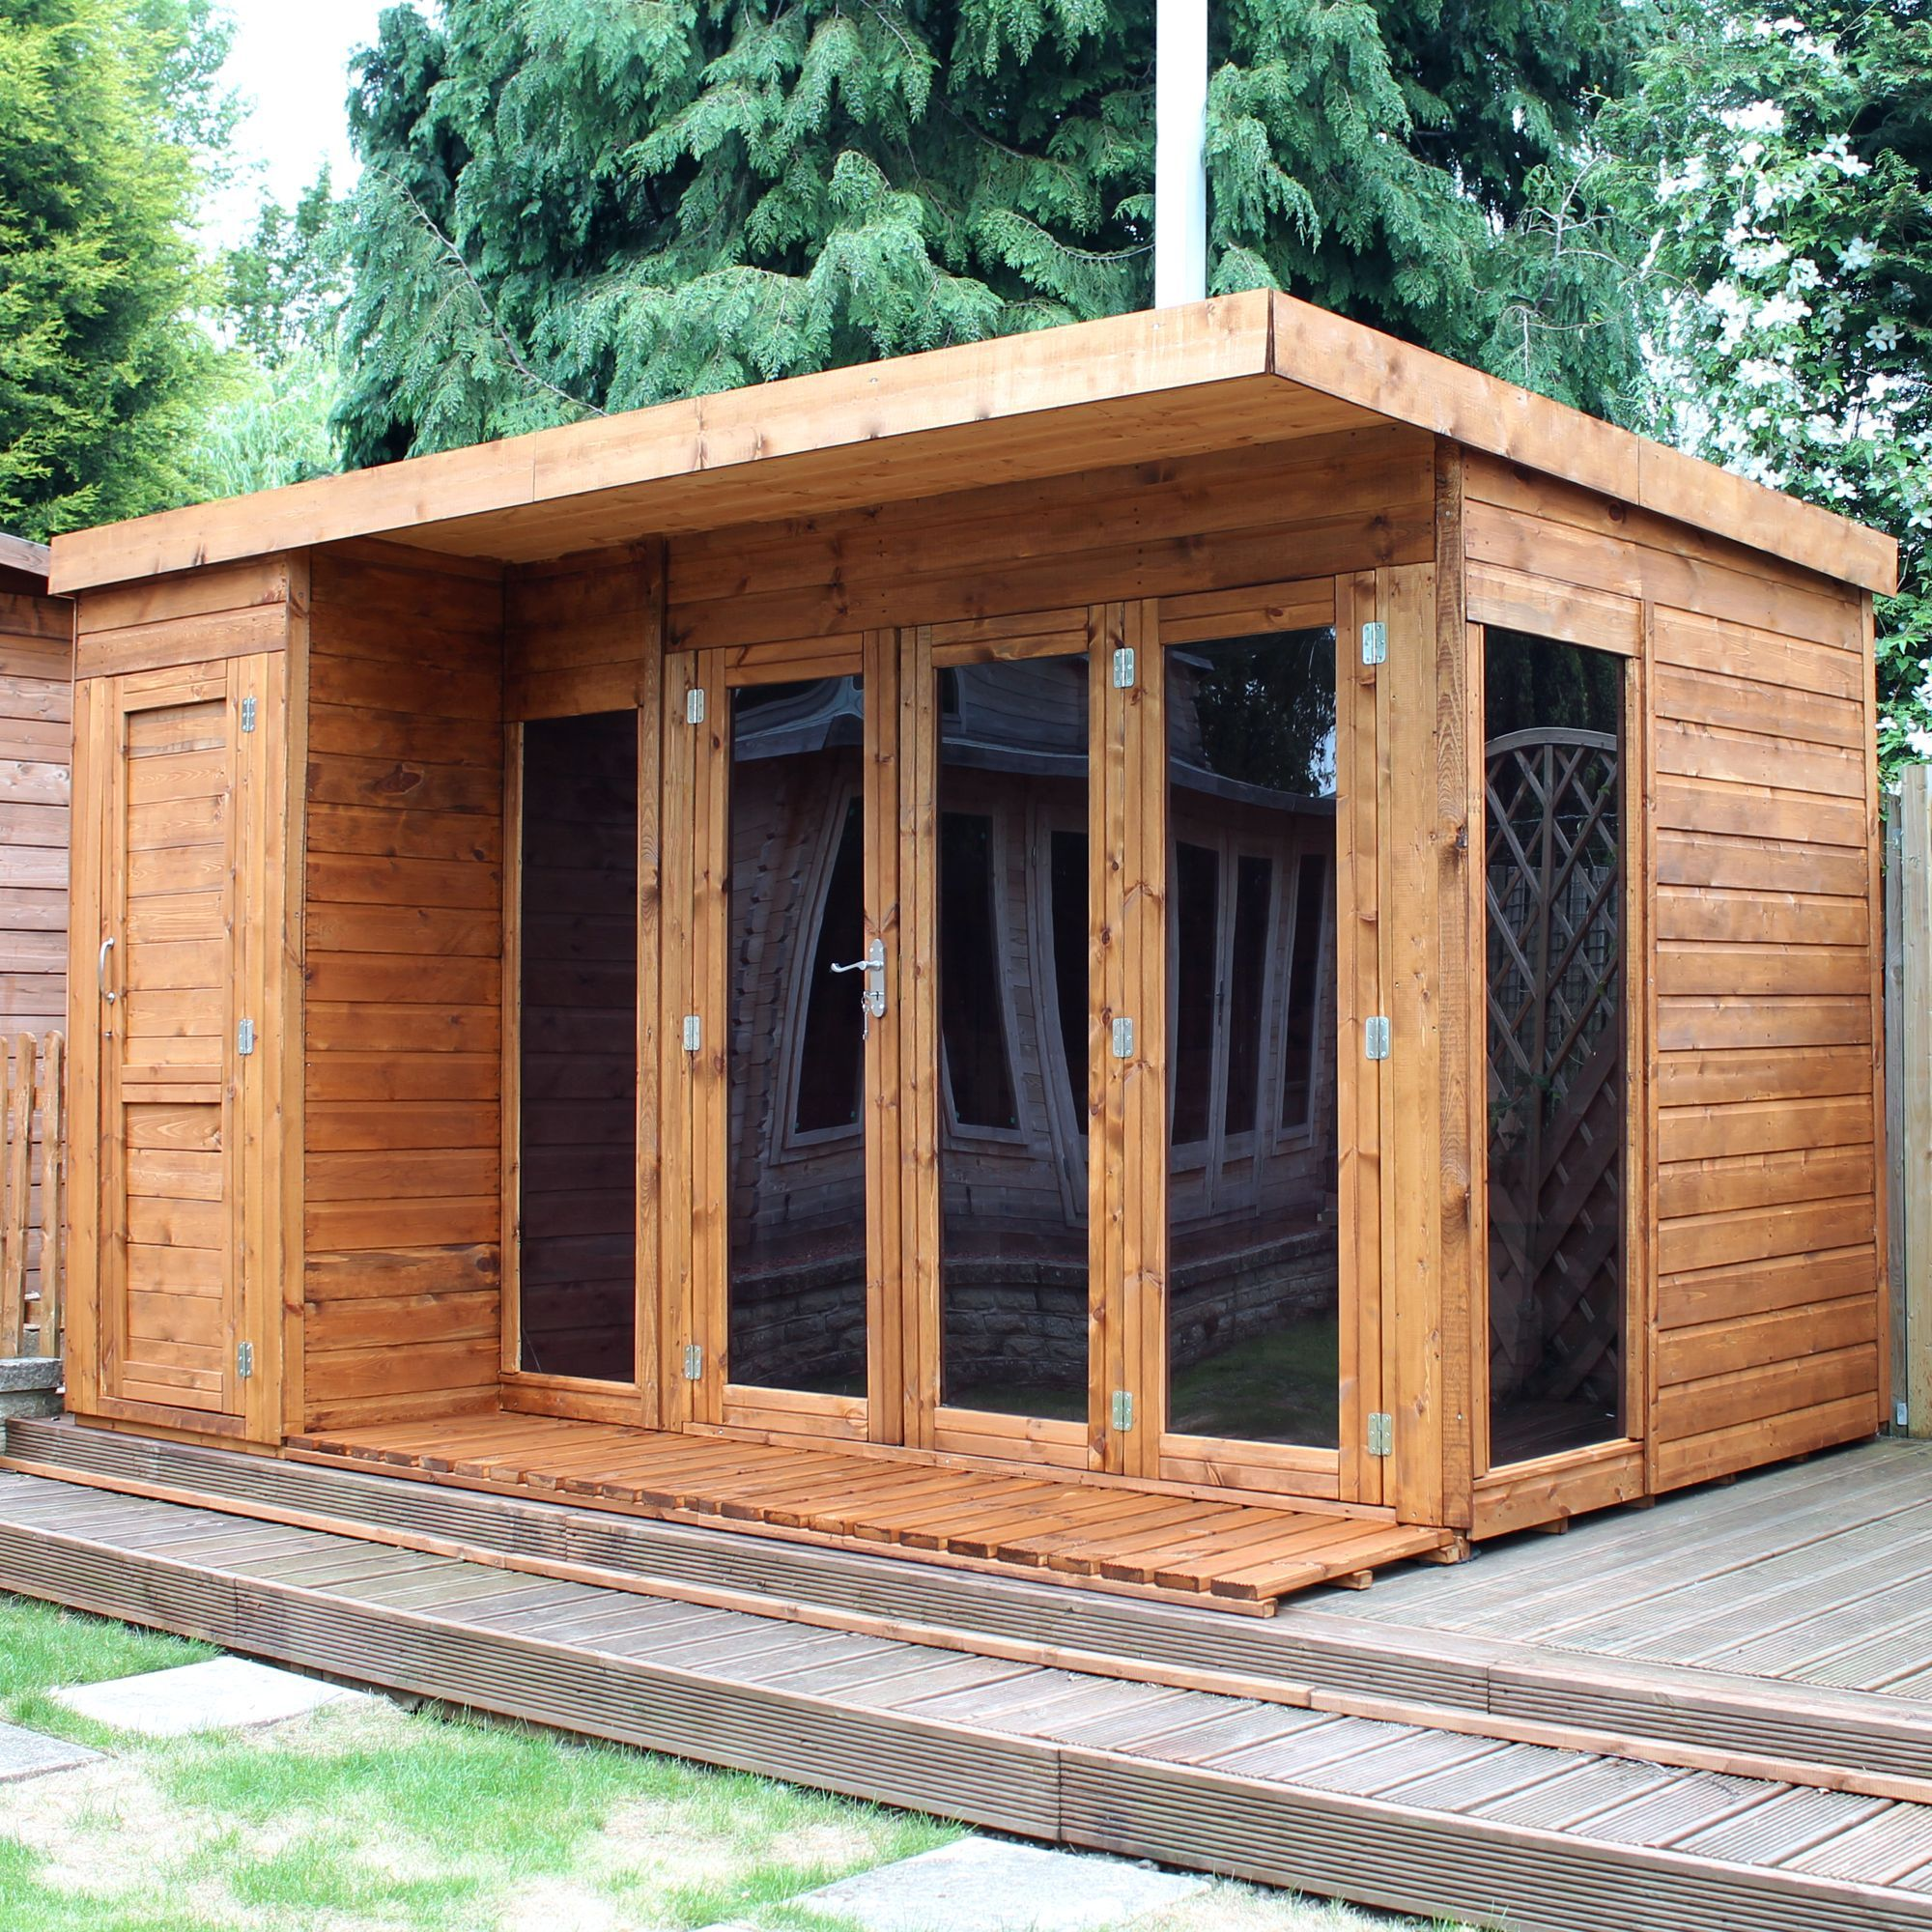 Garden Sheds 12x8 cotswold 12x8 modern garden room with side shed | little house